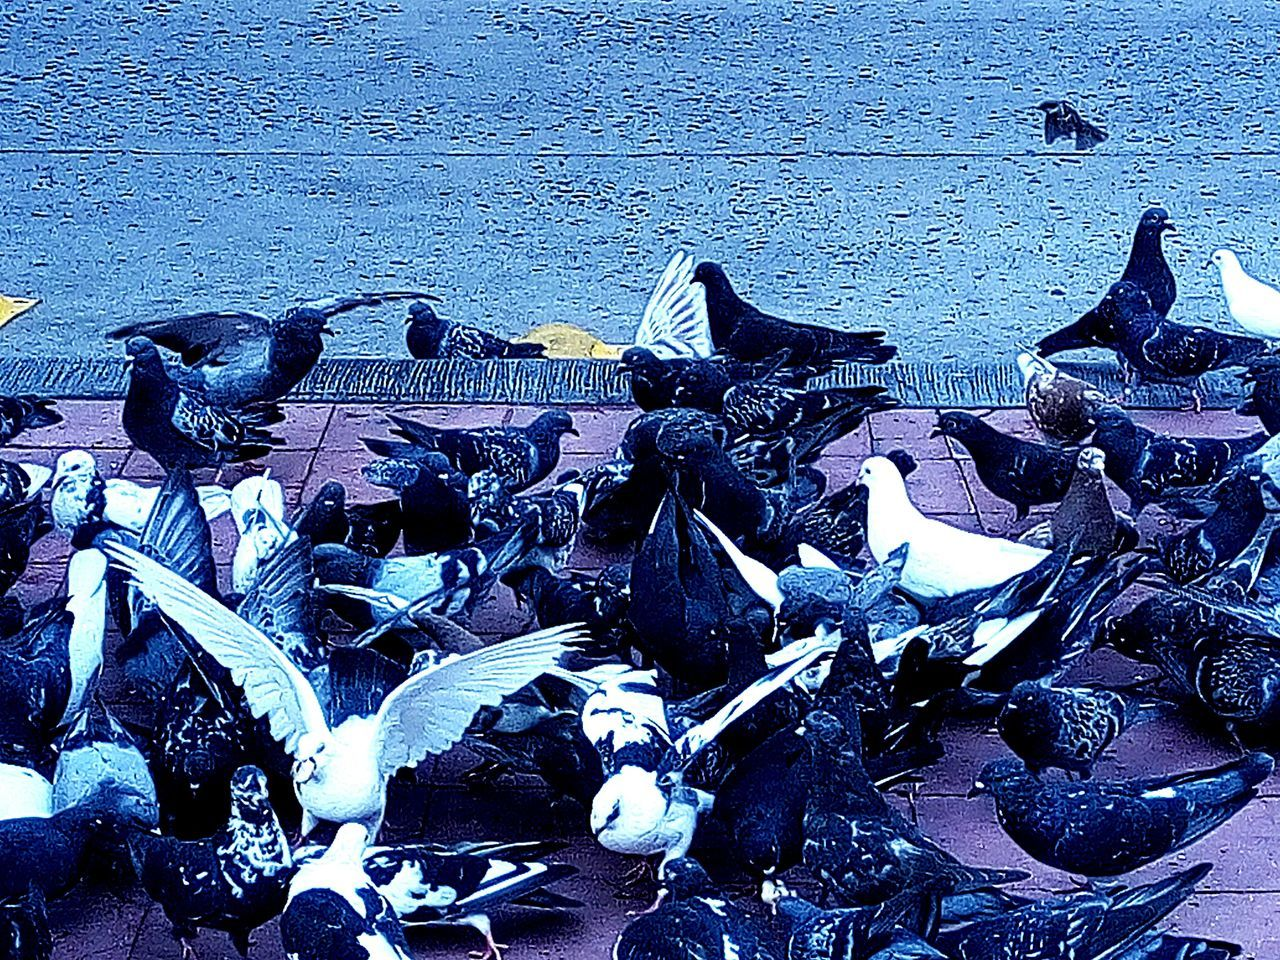 sea, large group of animals, animal themes, beach, animals in the wild, animal wildlife, no people, nautical vessel, outdoors, nature, water, day, bird, sea life, undersea, close-up, mammal